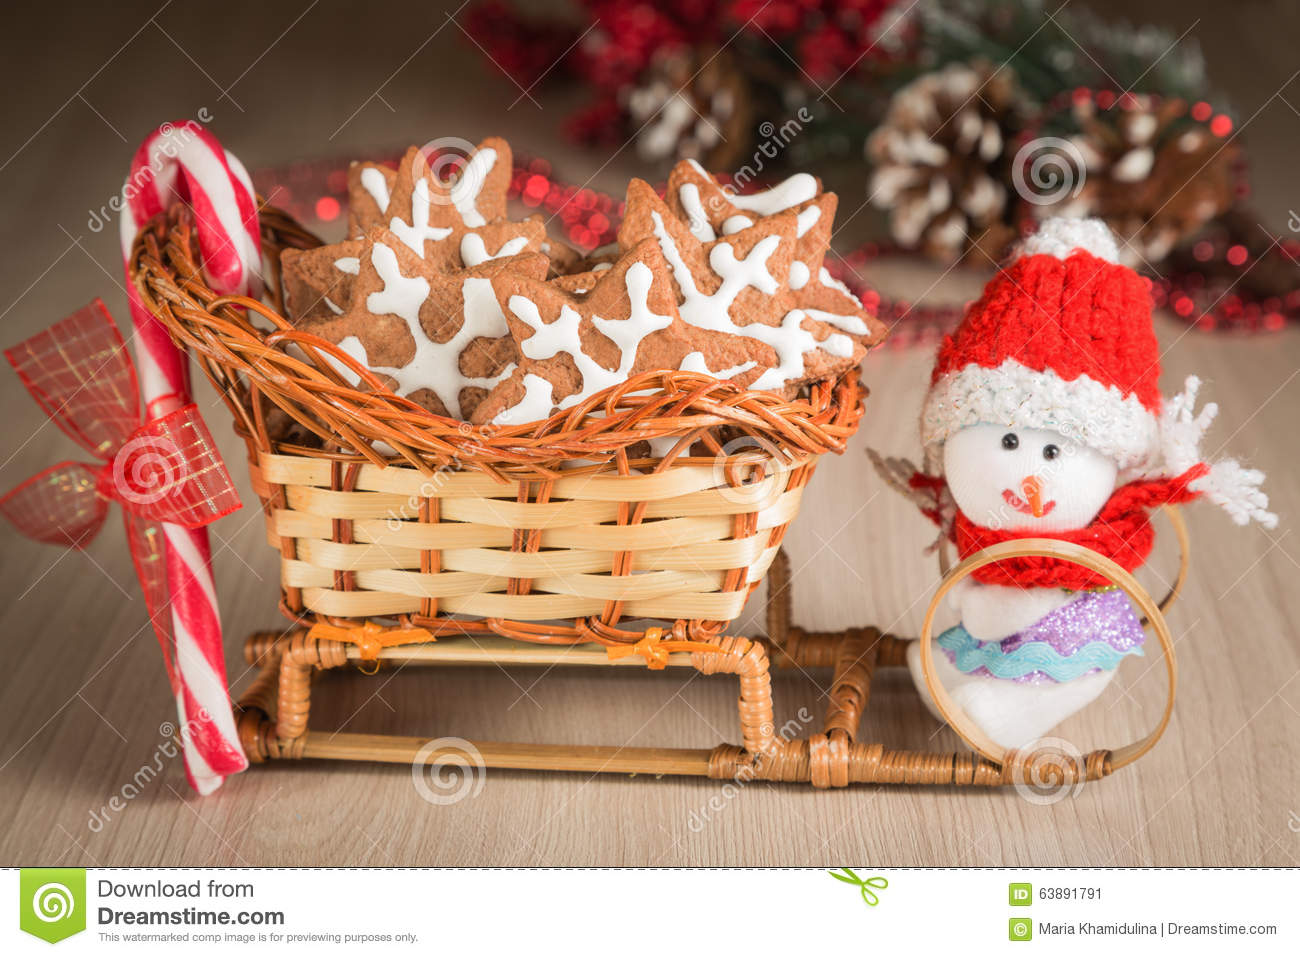 Gift Basket Sleigh With Cookies Candy And A Toy Snowman Dressed In